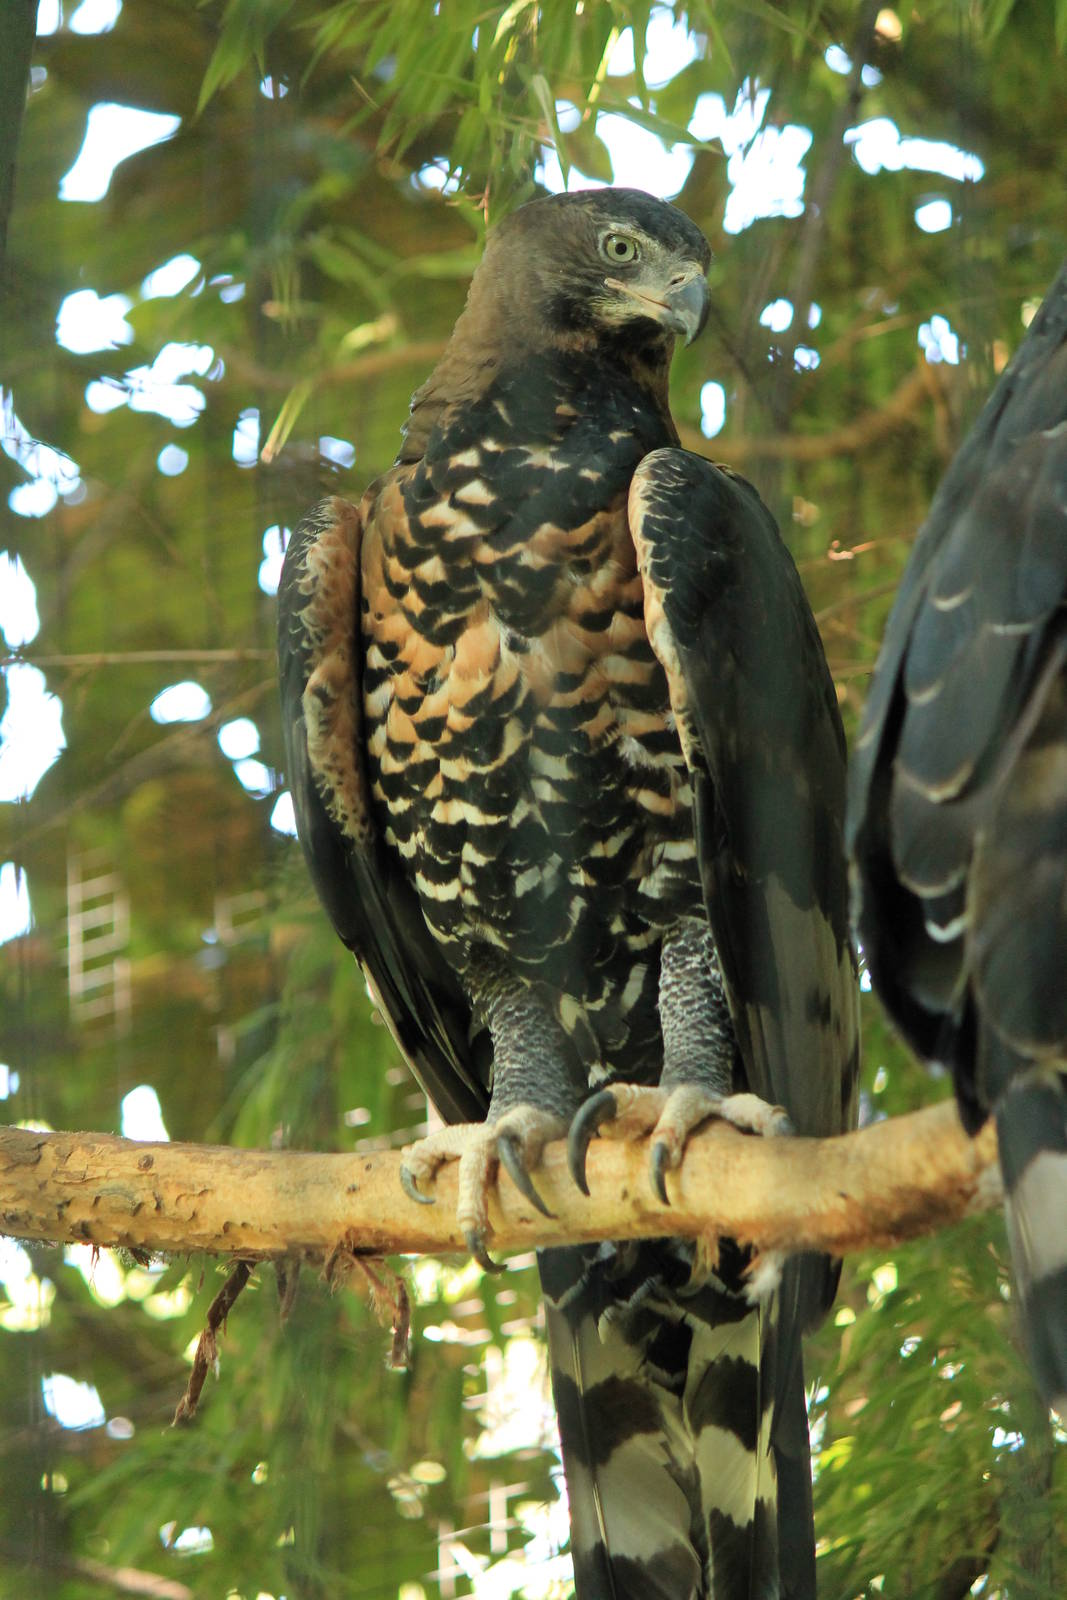 Iphone Hd Wallpapers 1080p Crowned Eagle Wallpapers High Quality Download Free